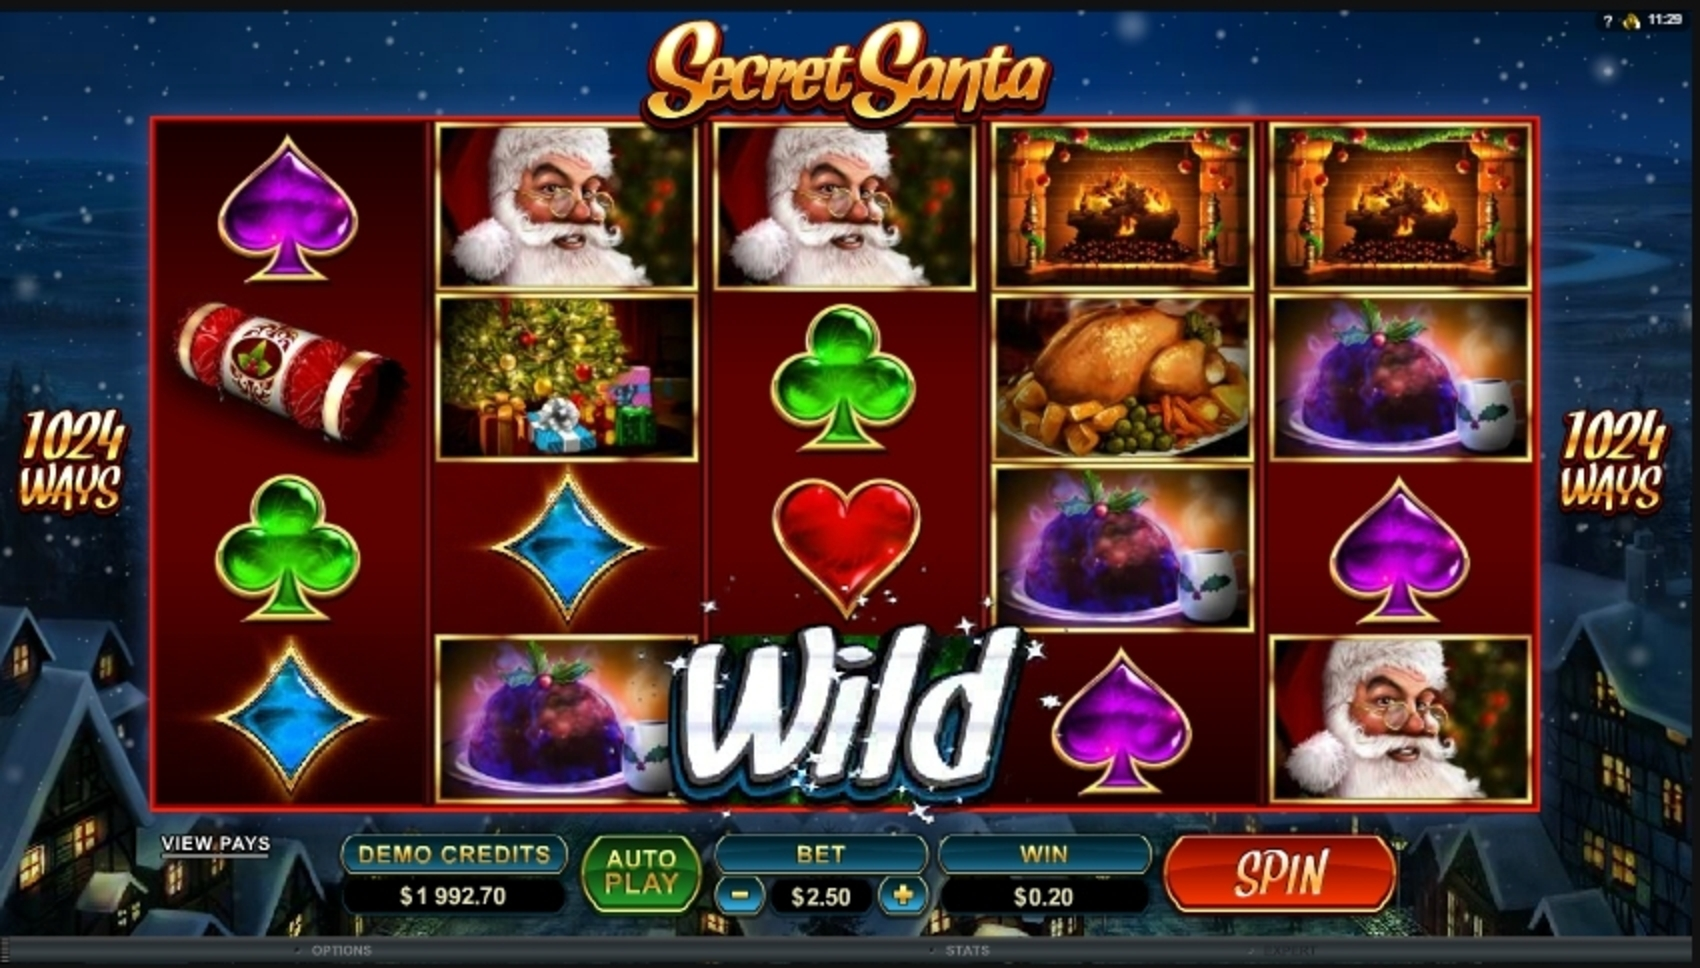 Win Money in Secret Santa Free Slot Game by Microgaming